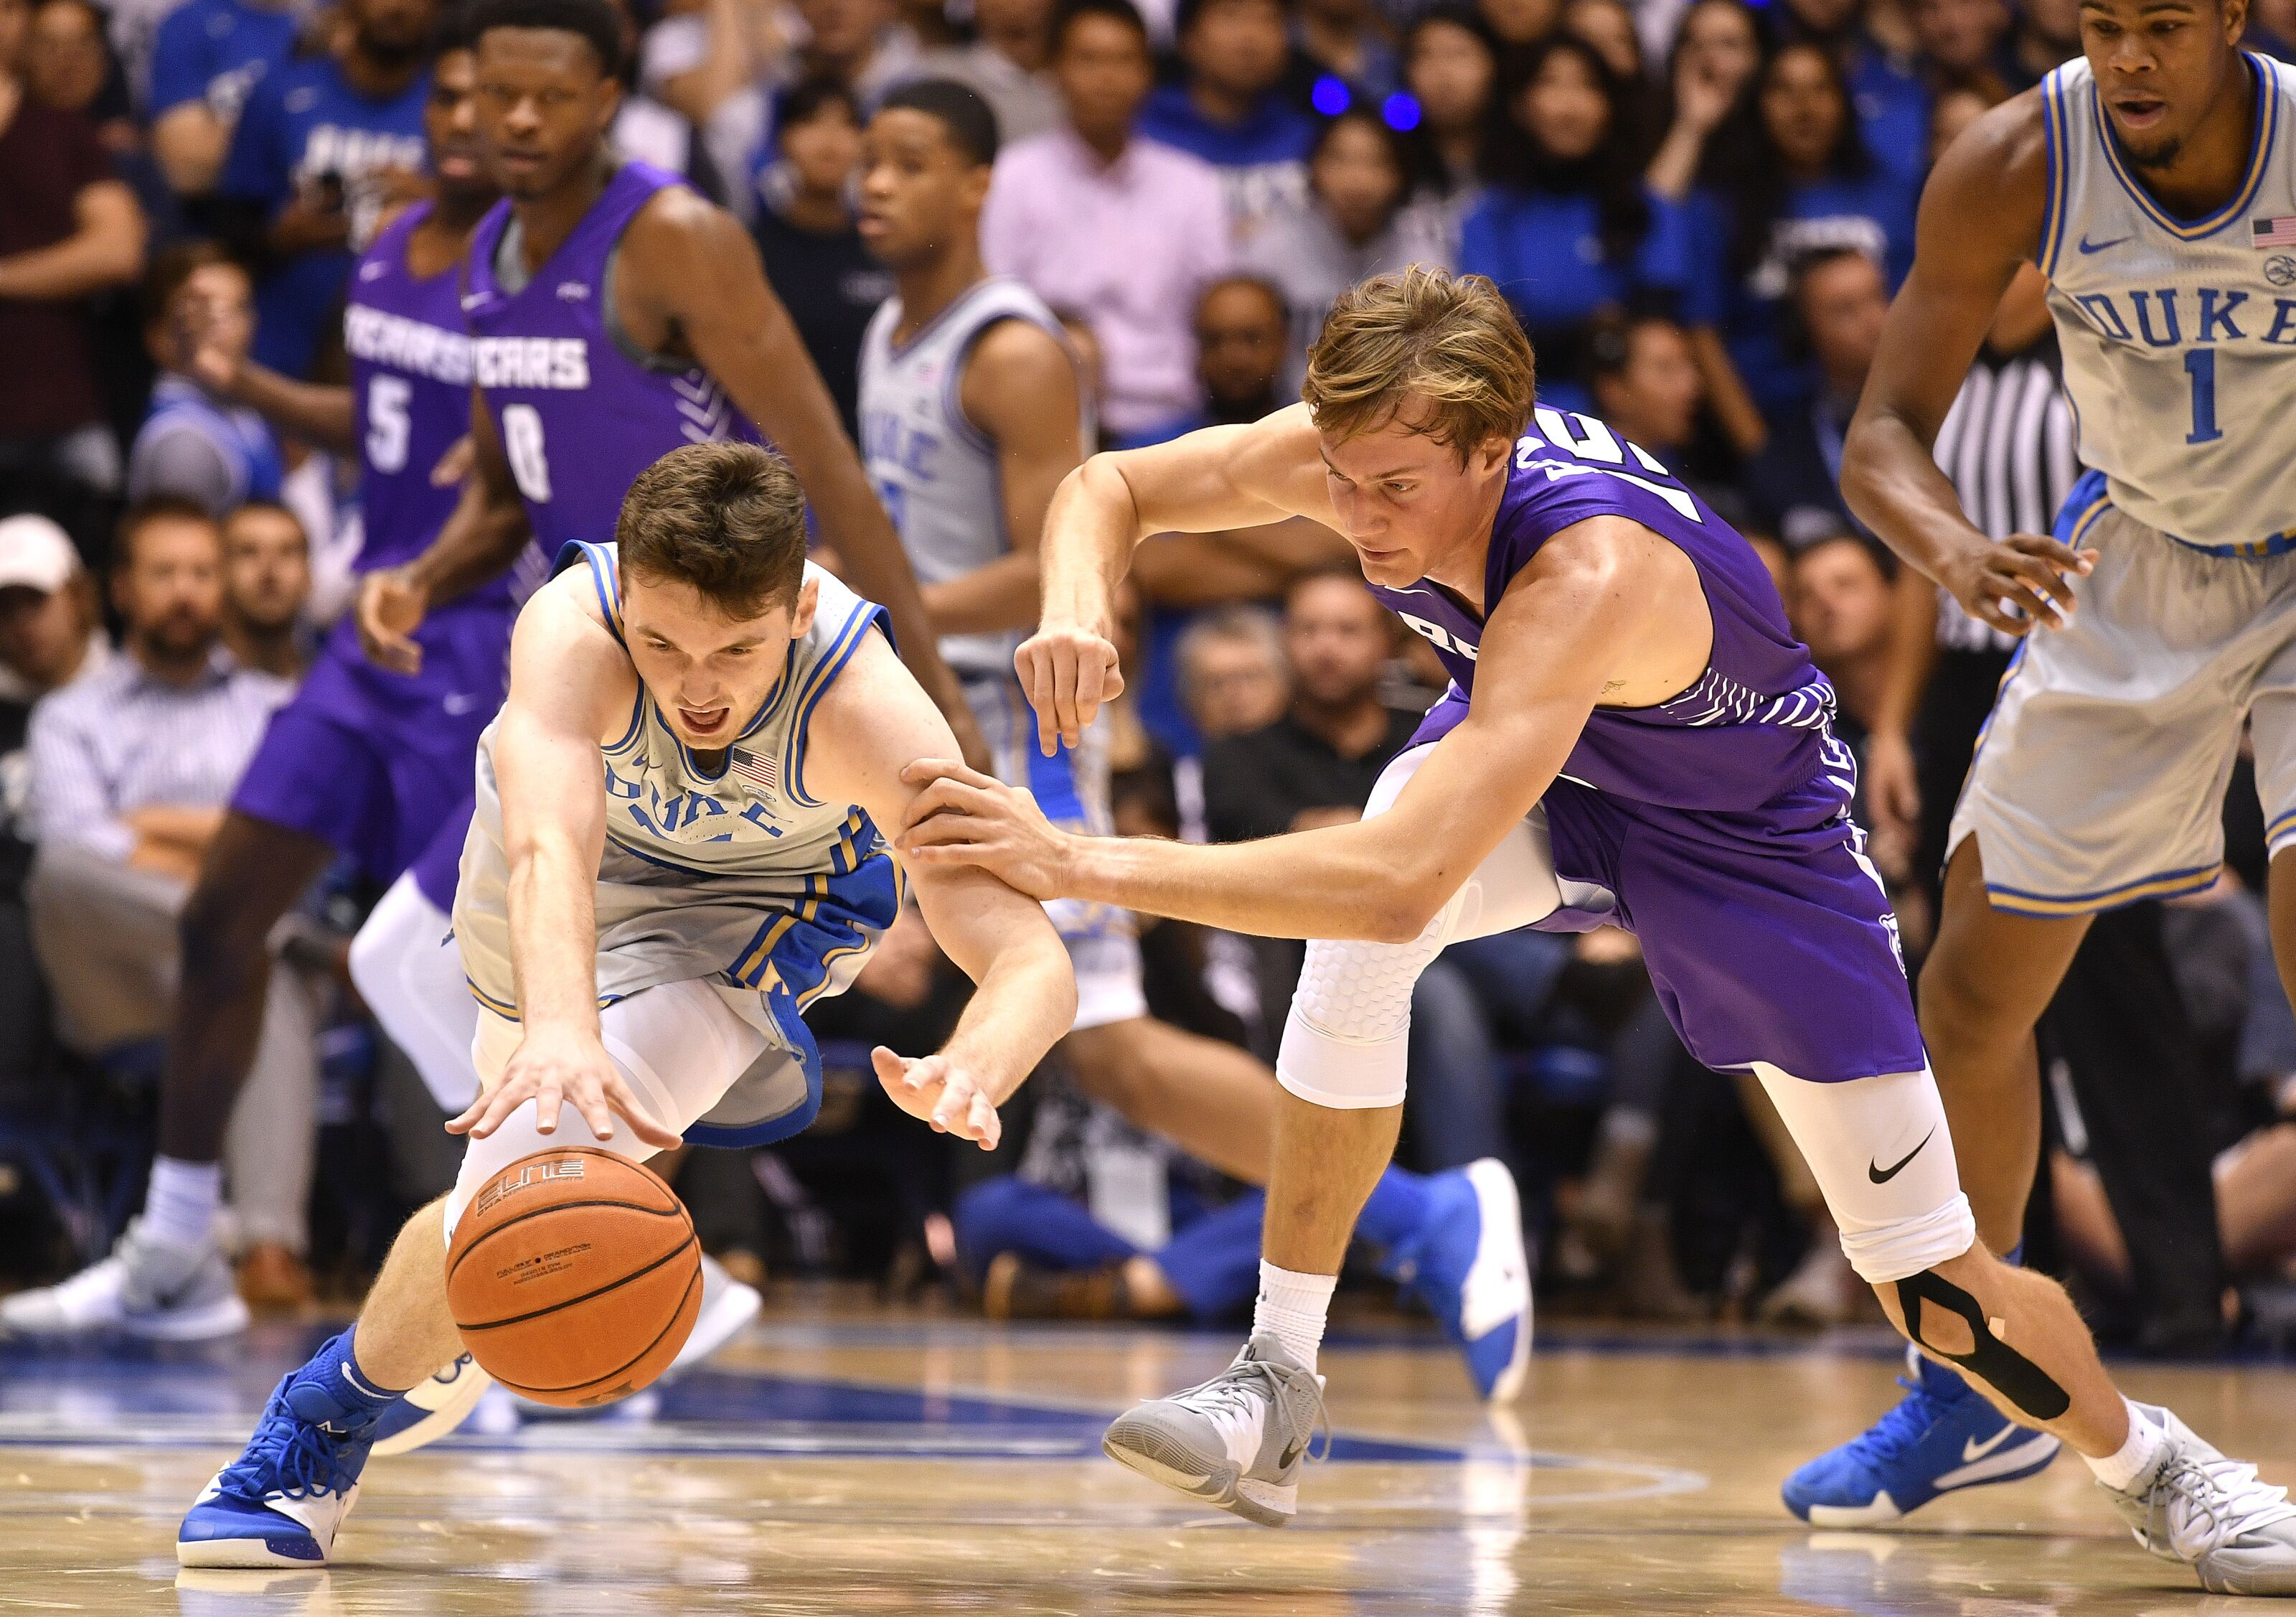 Duke basketball freshman Matthew Hurt impresses with unselfishness